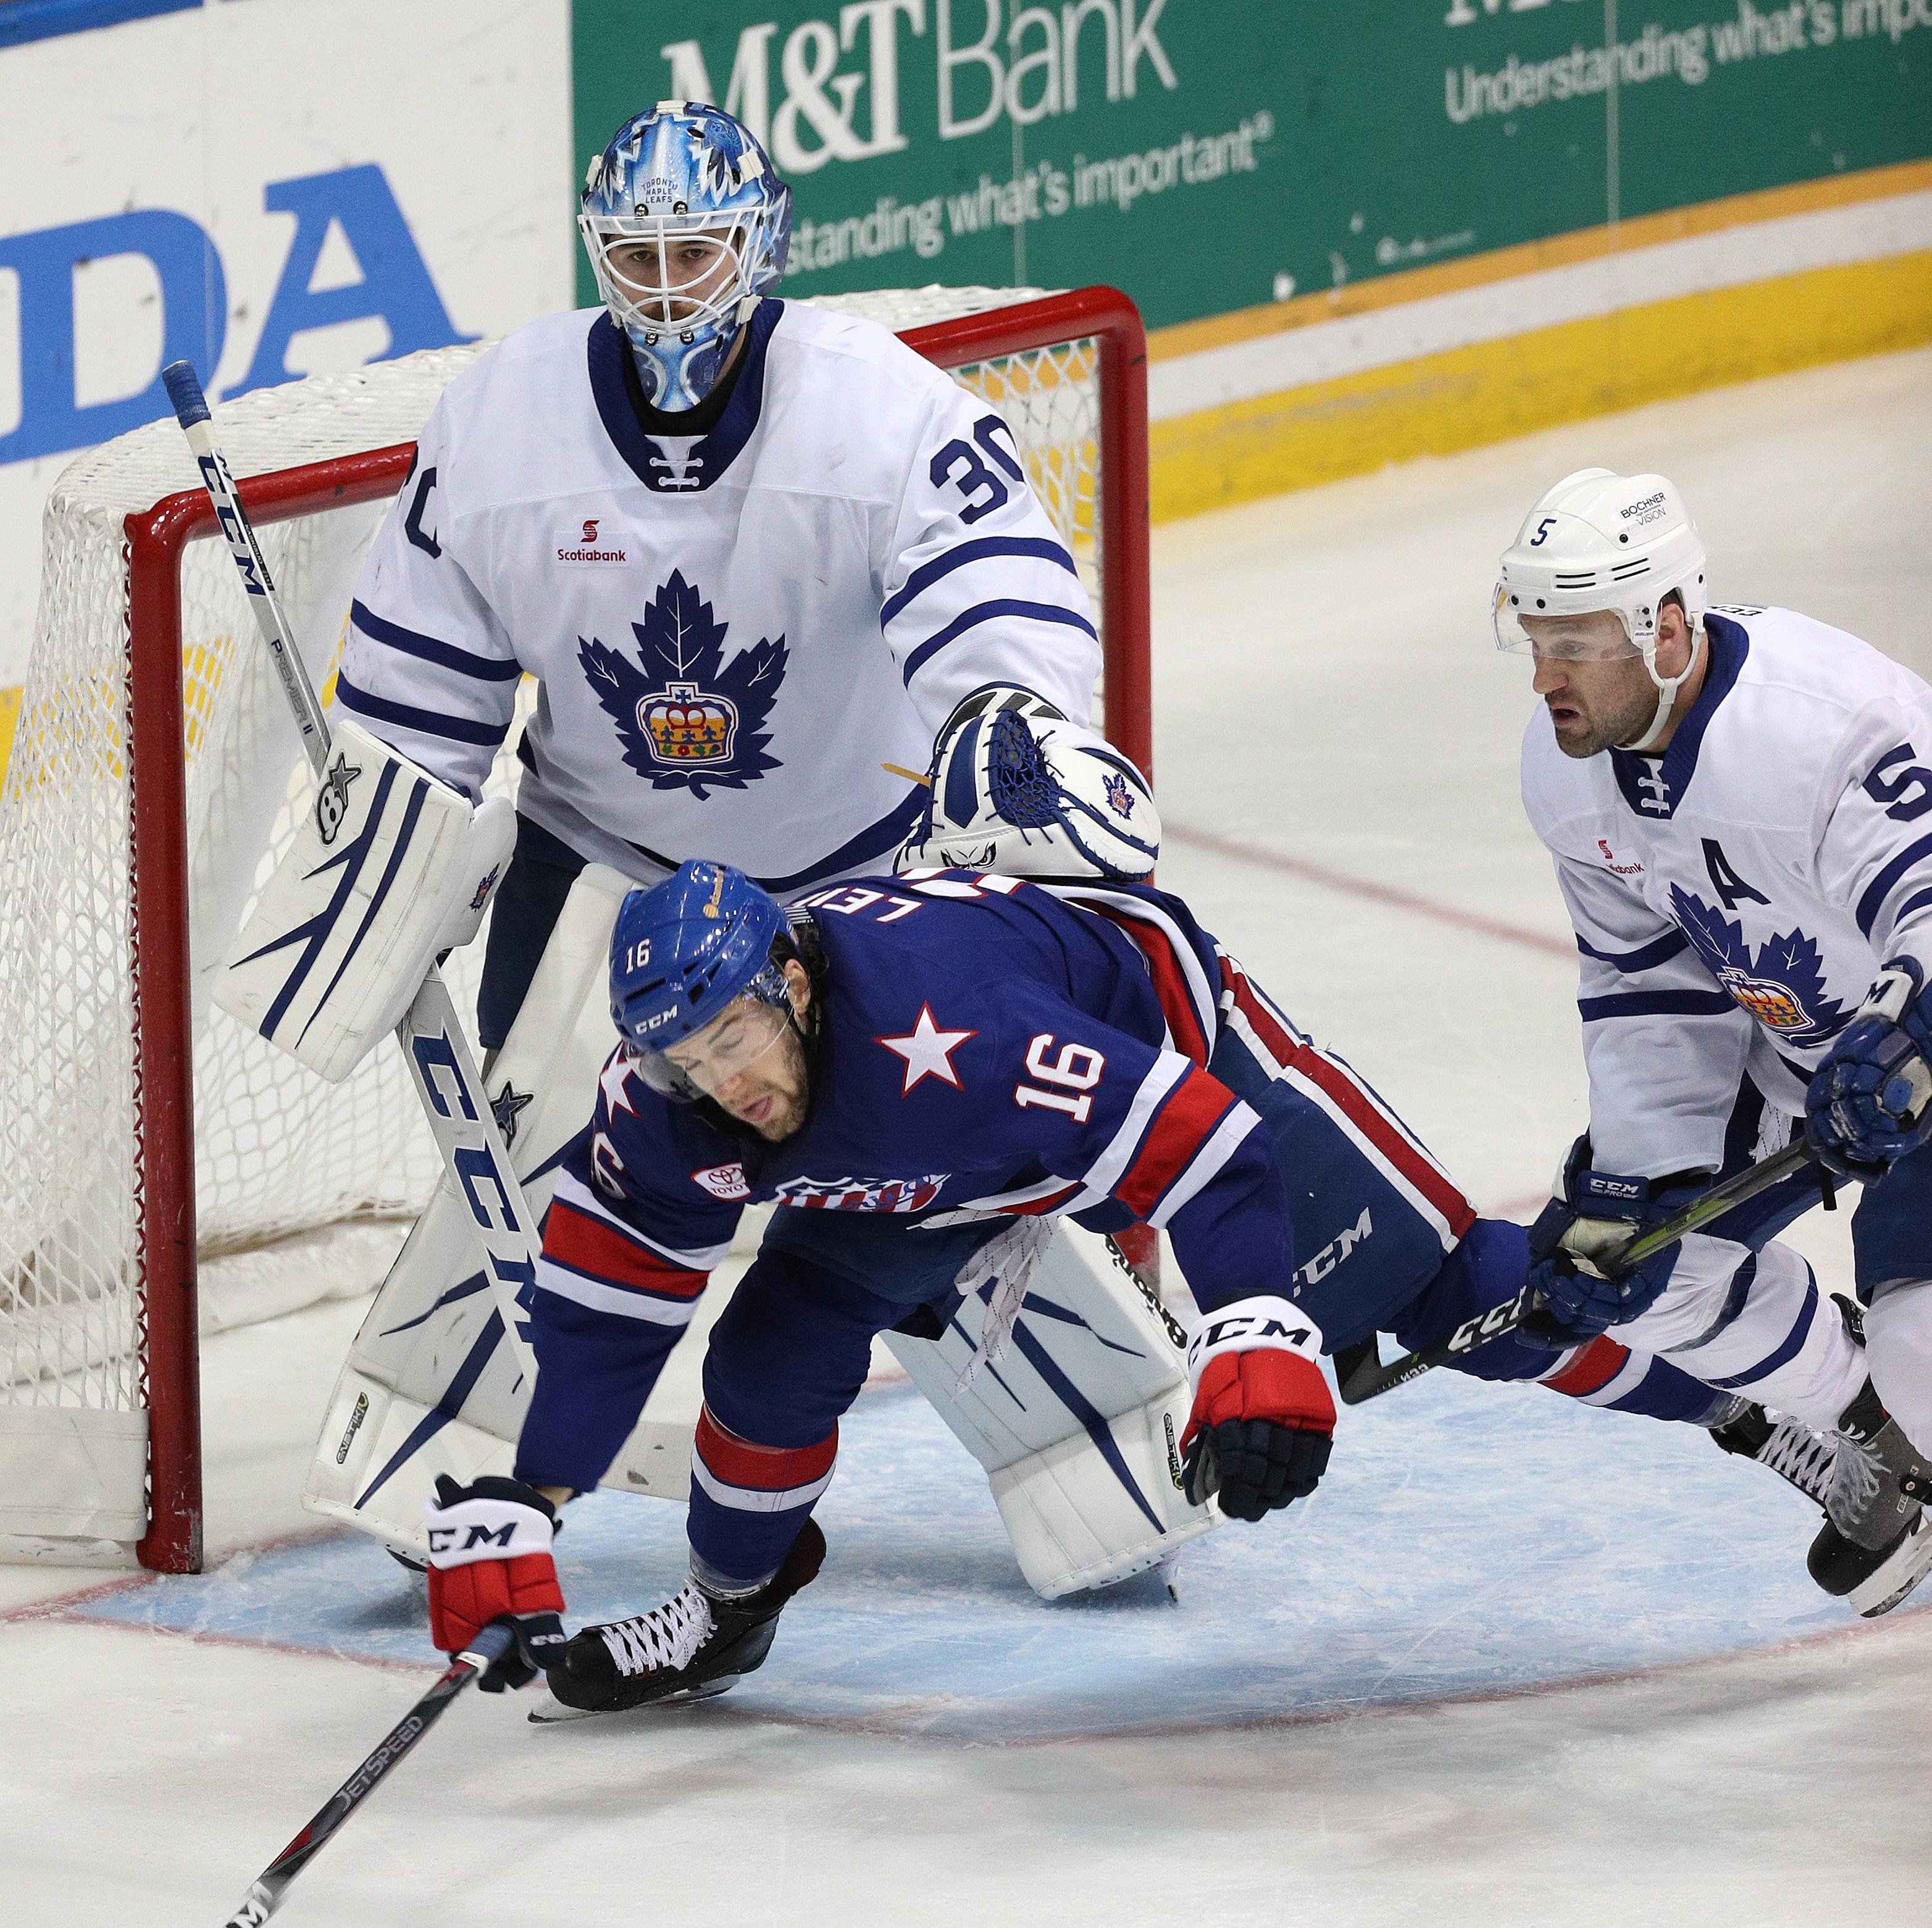 Amerks continue playoff drought against Toronto with ringing pipes, leaky defense in Game 1